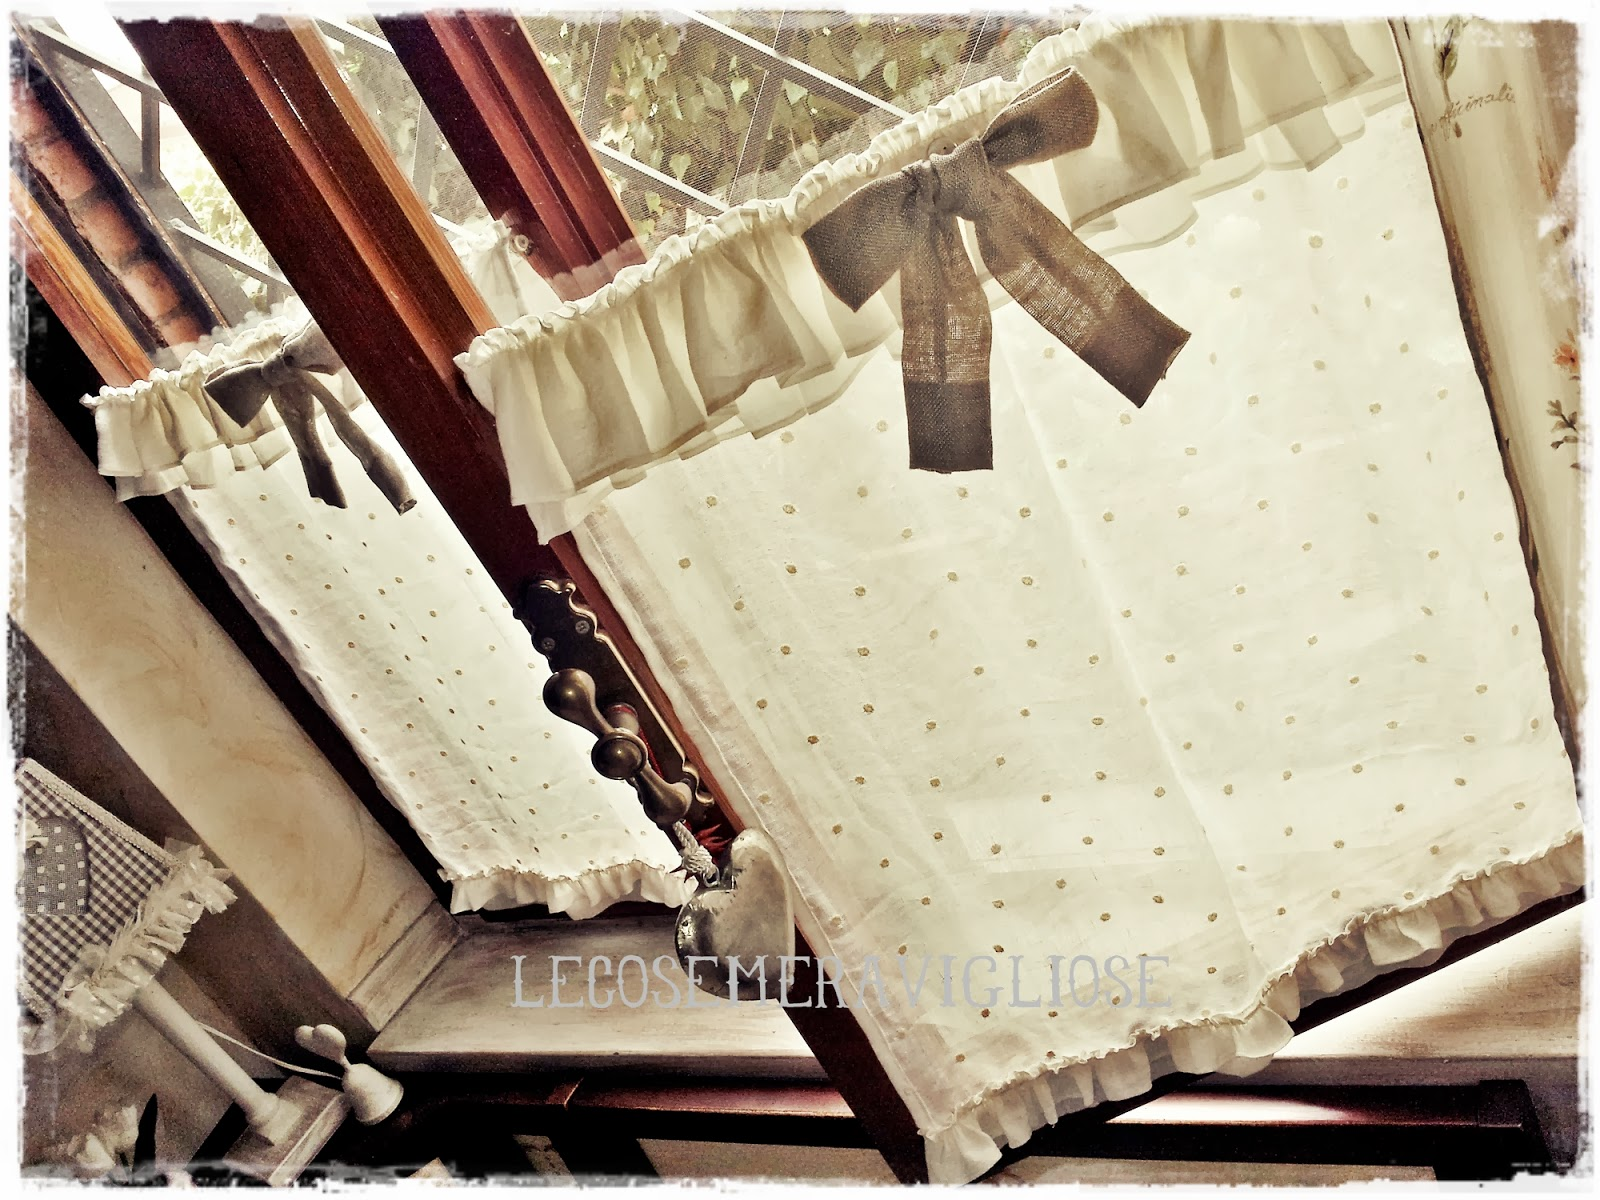 tende stile country chic : ... country chic passions: TENDE,CUSCINI, E COMPLEMENTI CREATIVI COUNTRY E